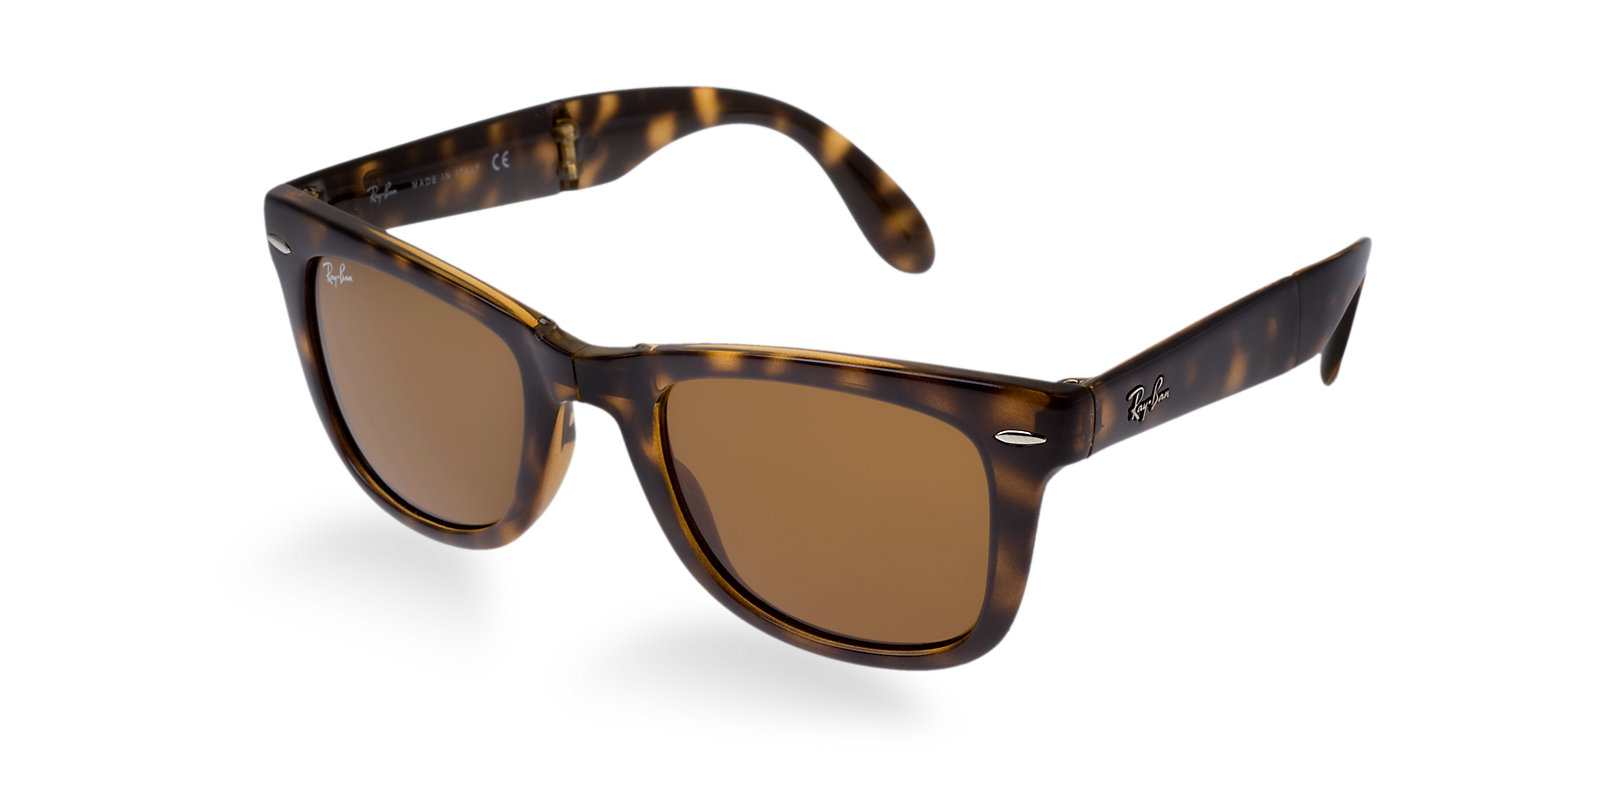 e4216b928 Previous; Next. Previous; Next. RAY-BAN RB4105 710 TORTOISE FOLDING  WAYFARER SUNGLASSES